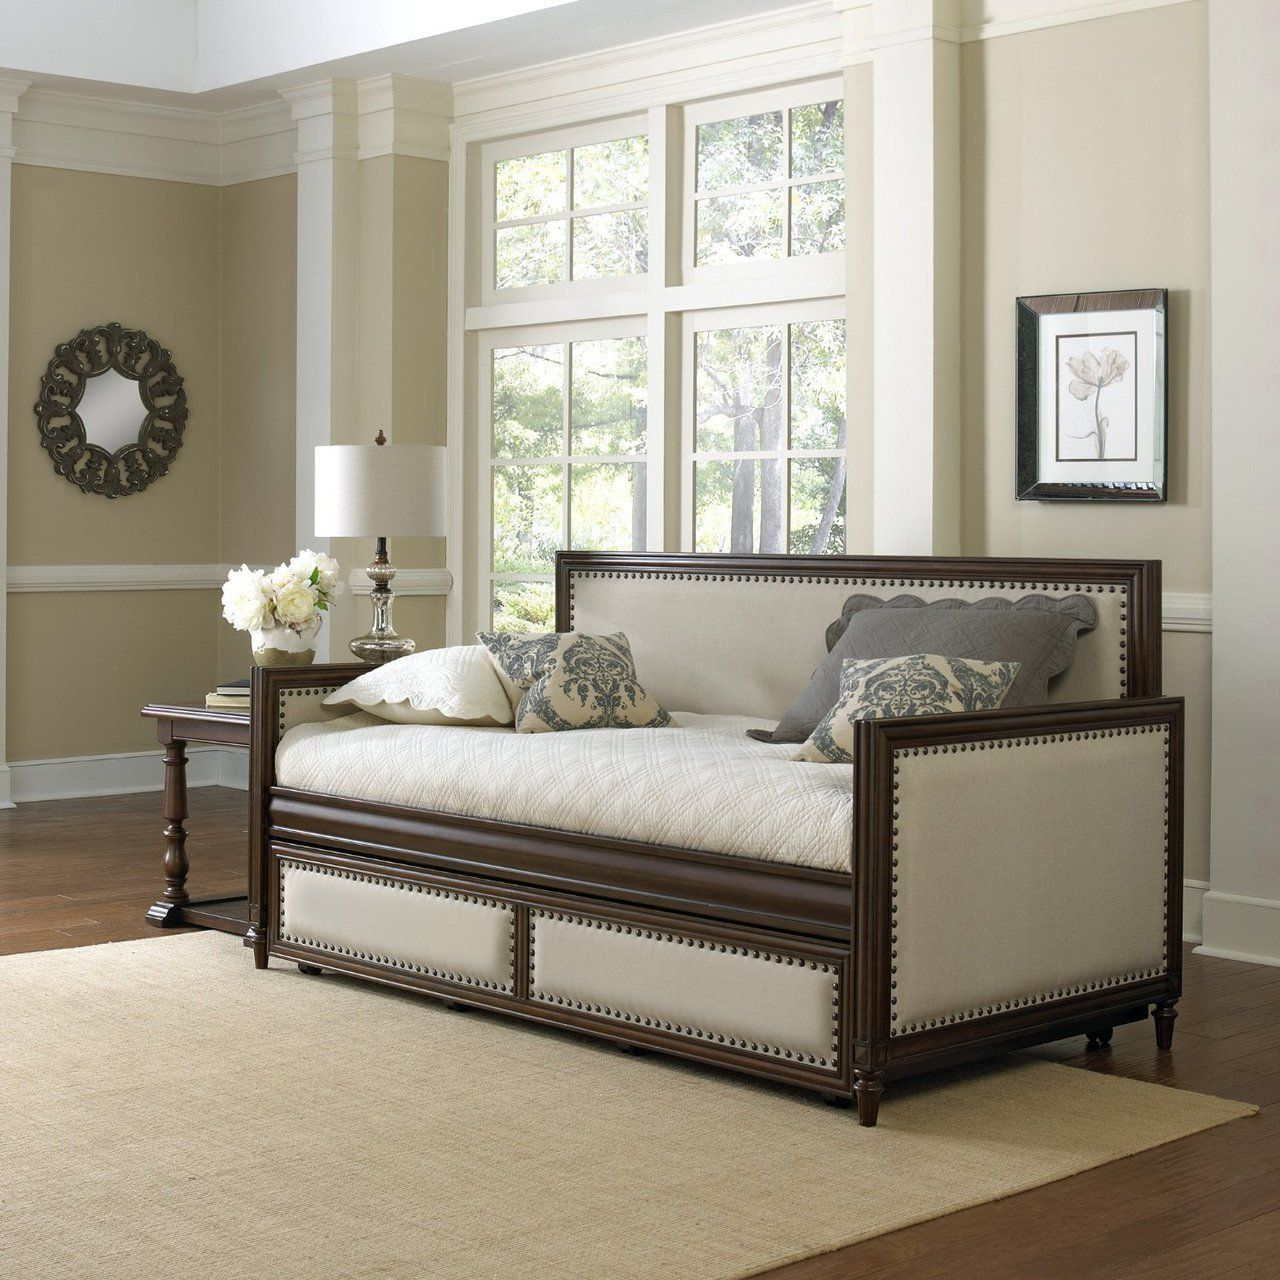 Fashion Bed Group Grandover Wood Upholstered Daybed